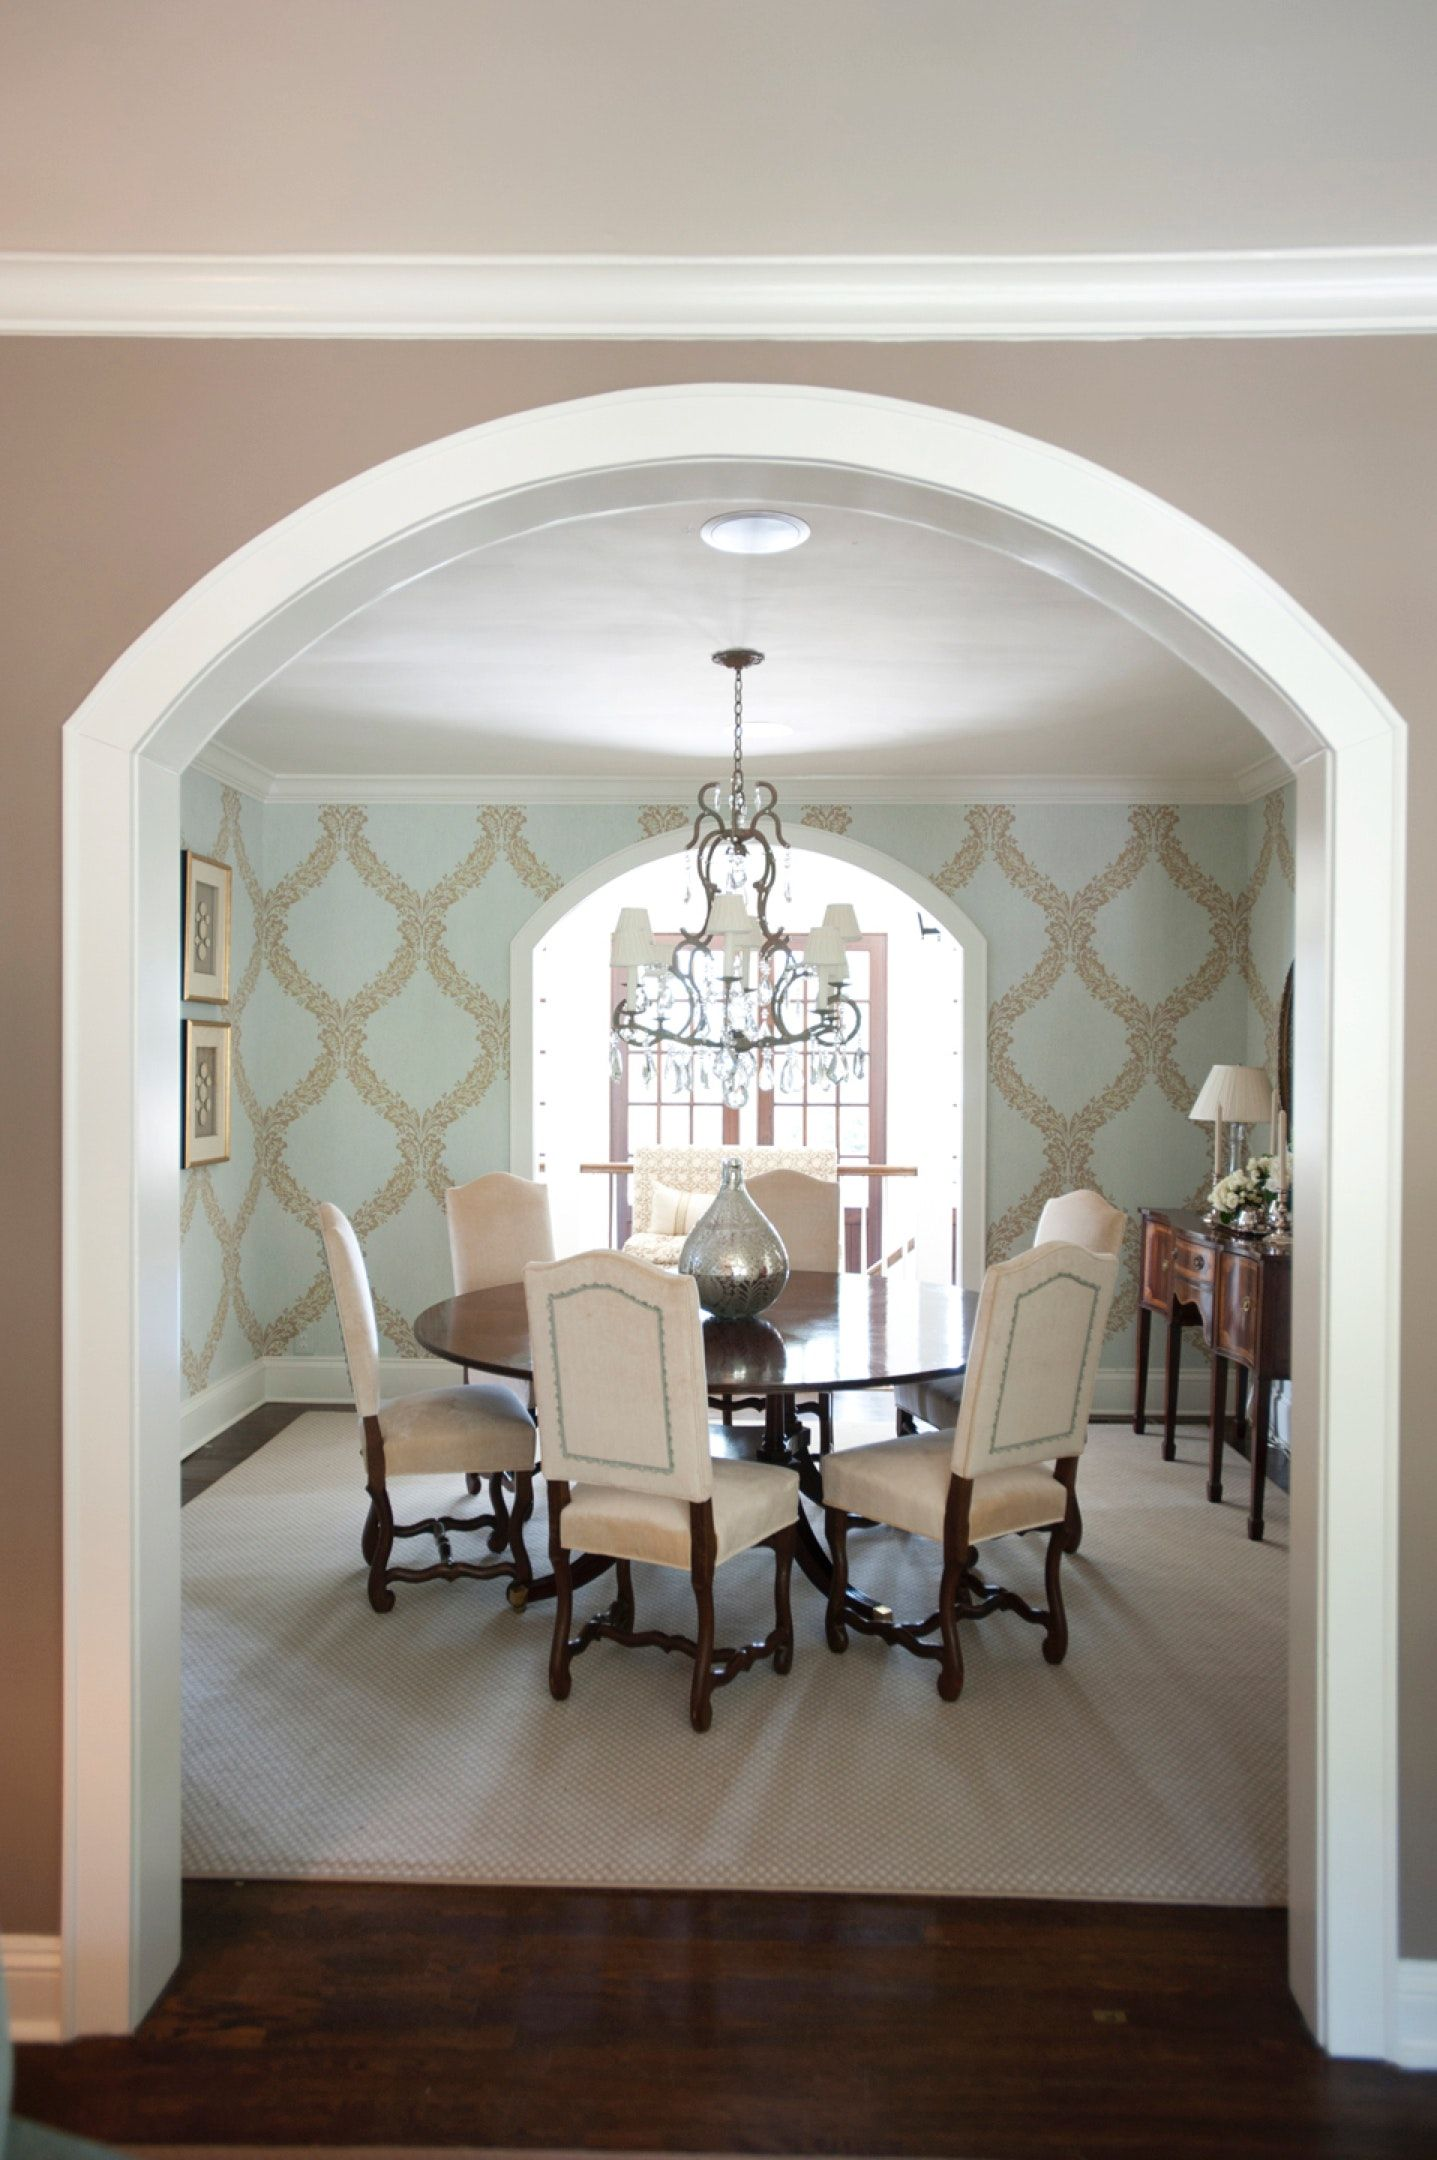 Archway Leading To Dining Room With Custom Wallpaper And Crystal